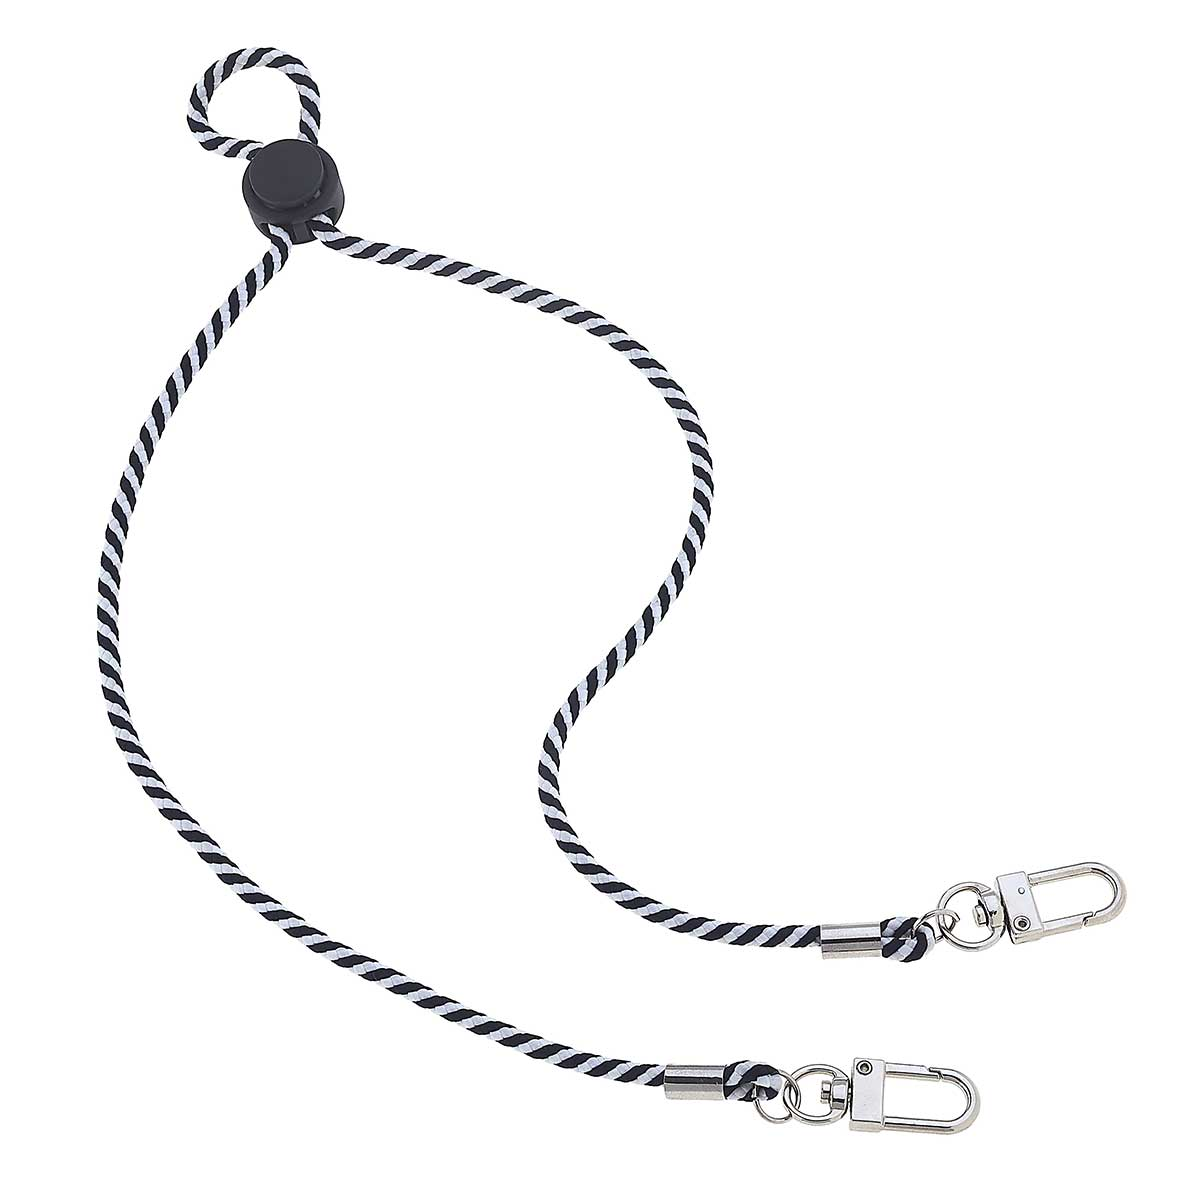 Ethan Men's Cord Mask Lanyard in Black and White